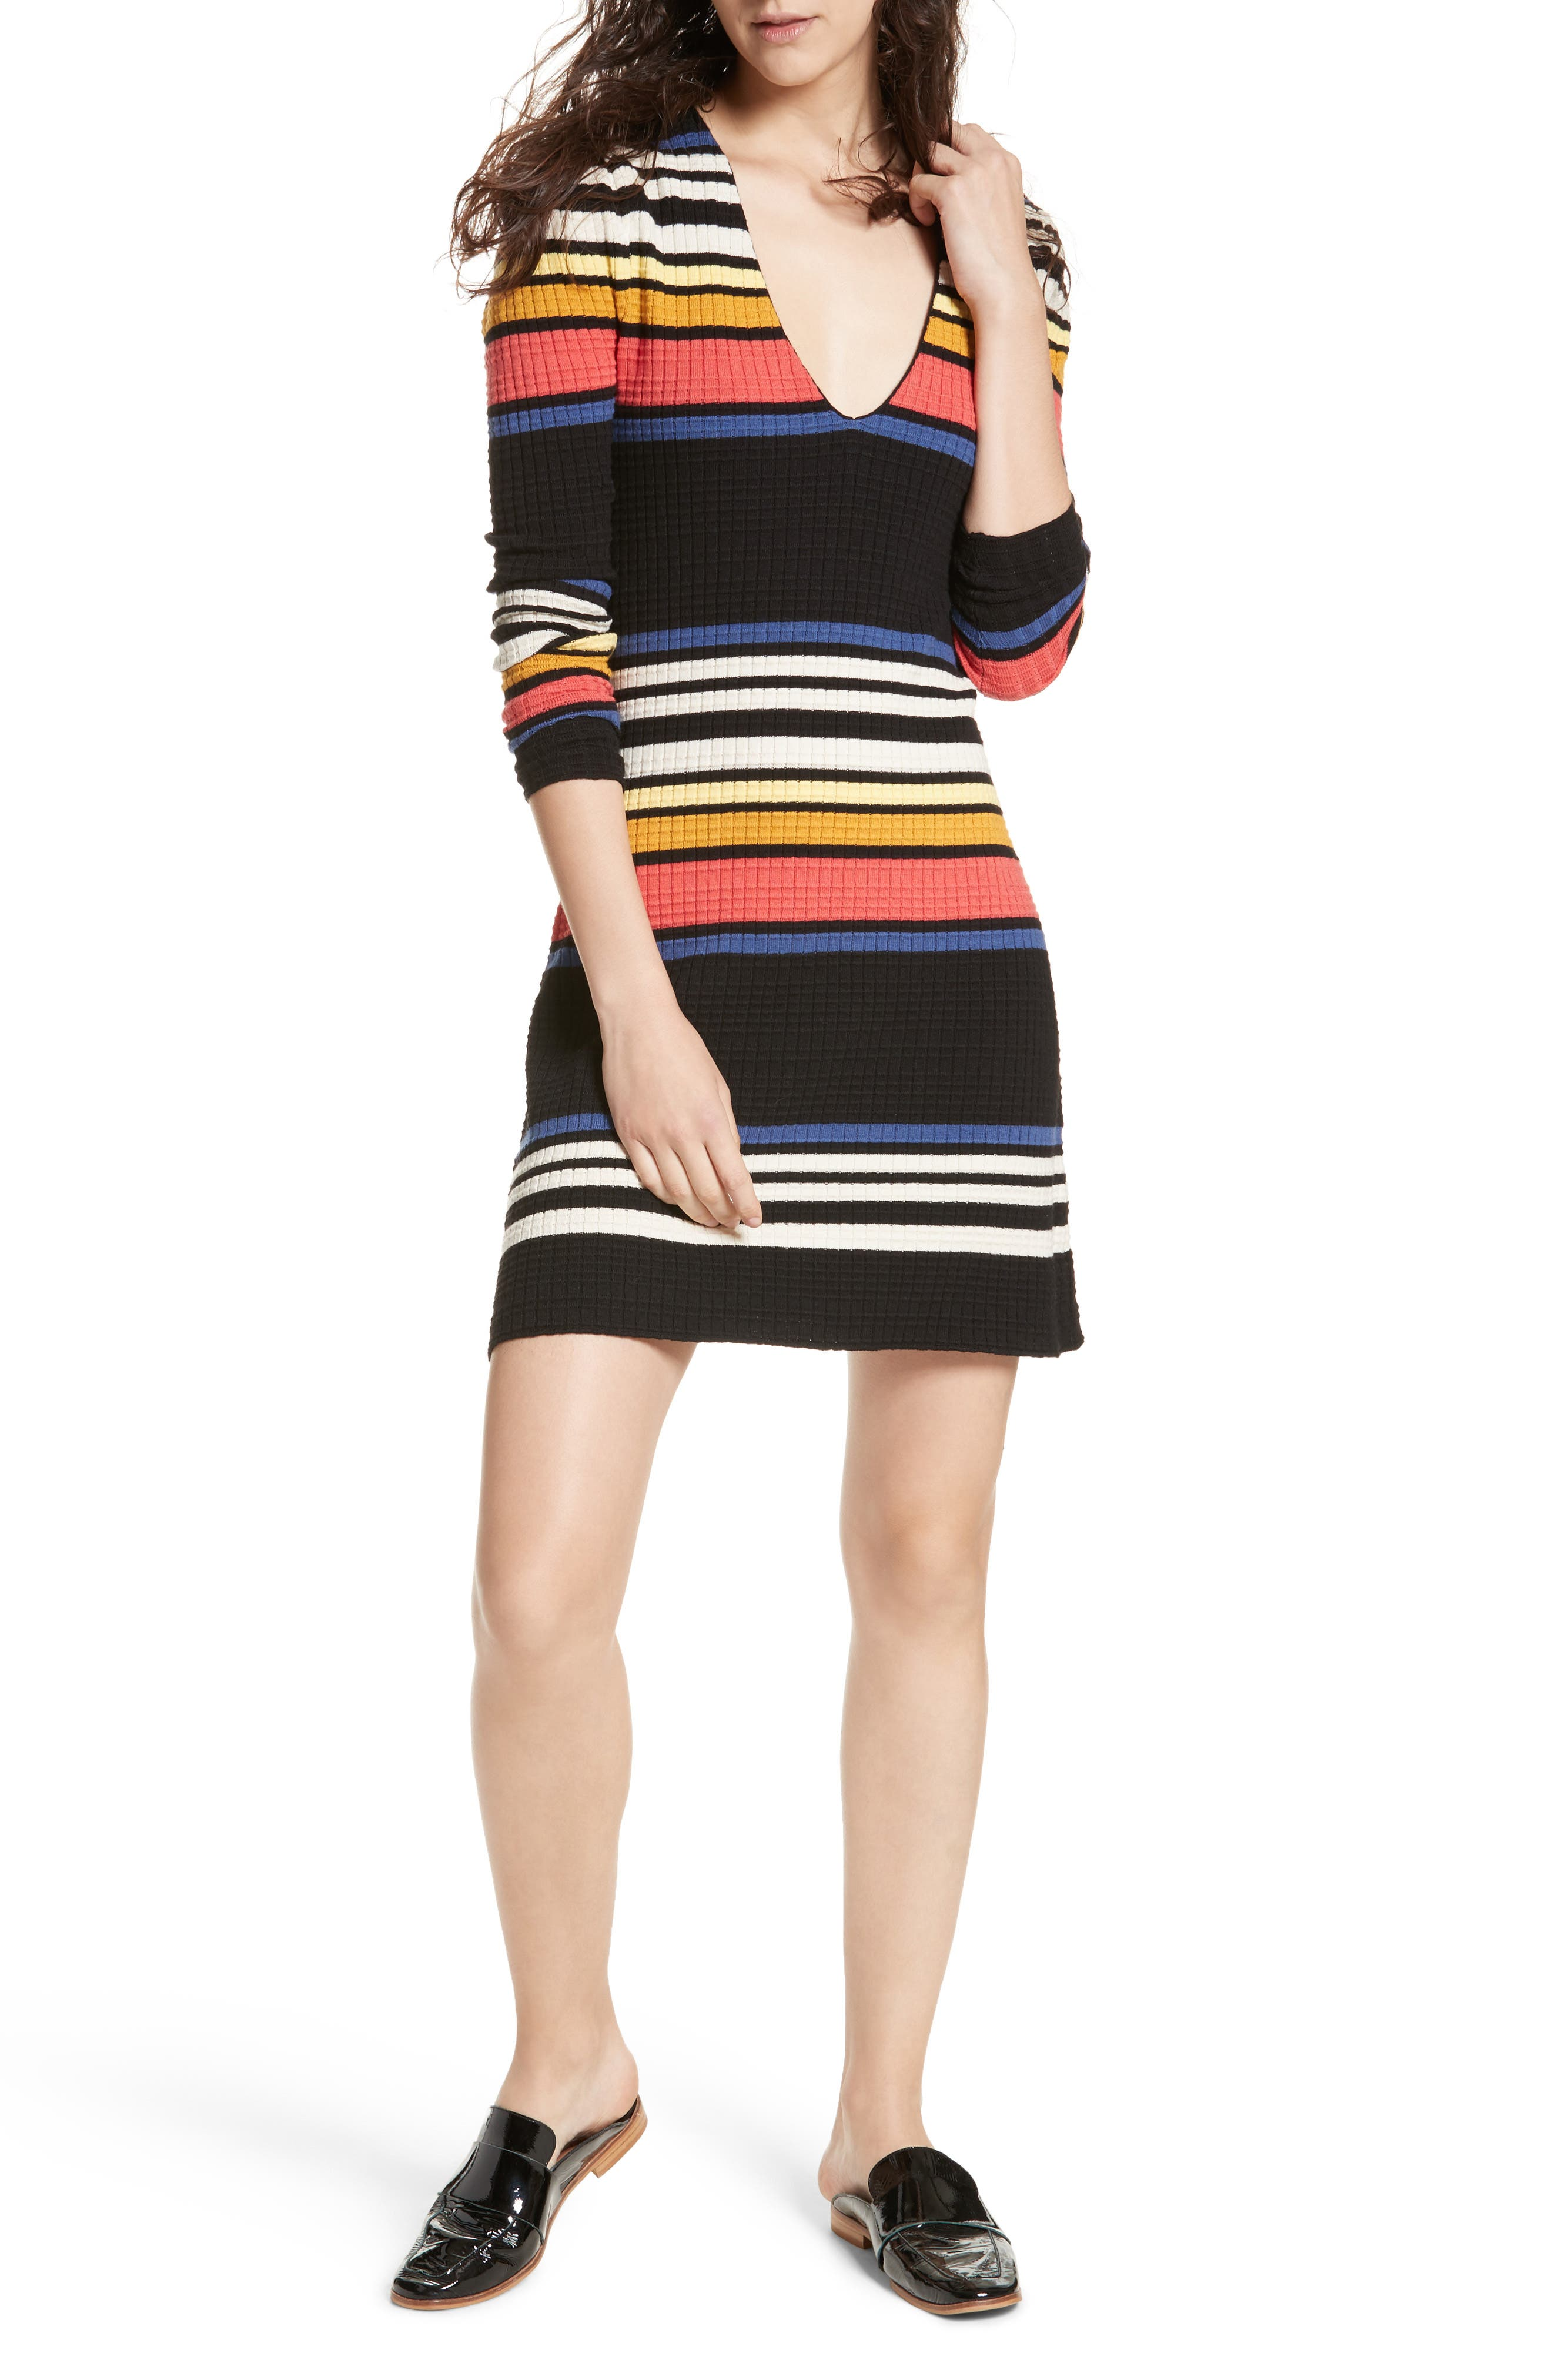 Gidget Sweater Dress,                         Main,                         color, 001